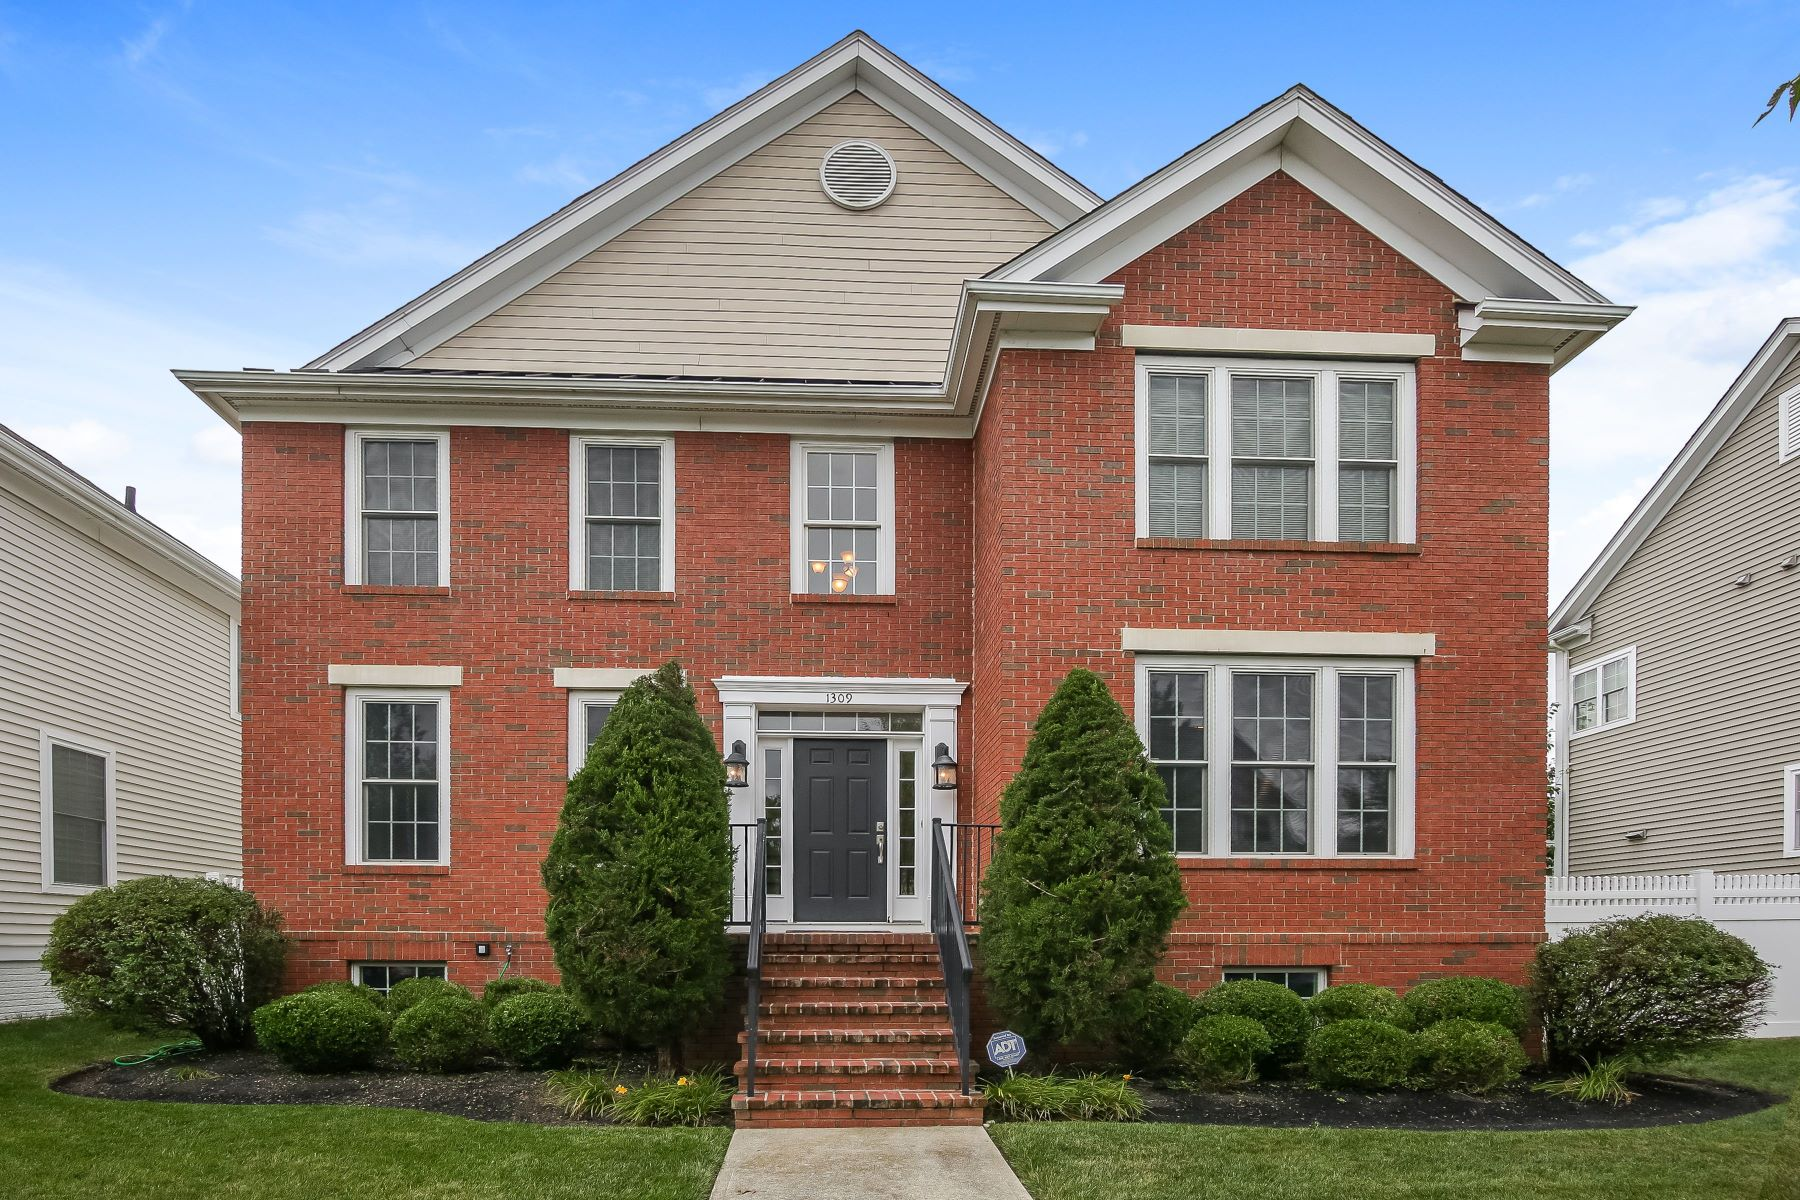 Single Family Homes for Active at Robbinsville Sophisticate Is Pure Bliss 1309 Park Street Robbinsville, New Jersey 08691 United States